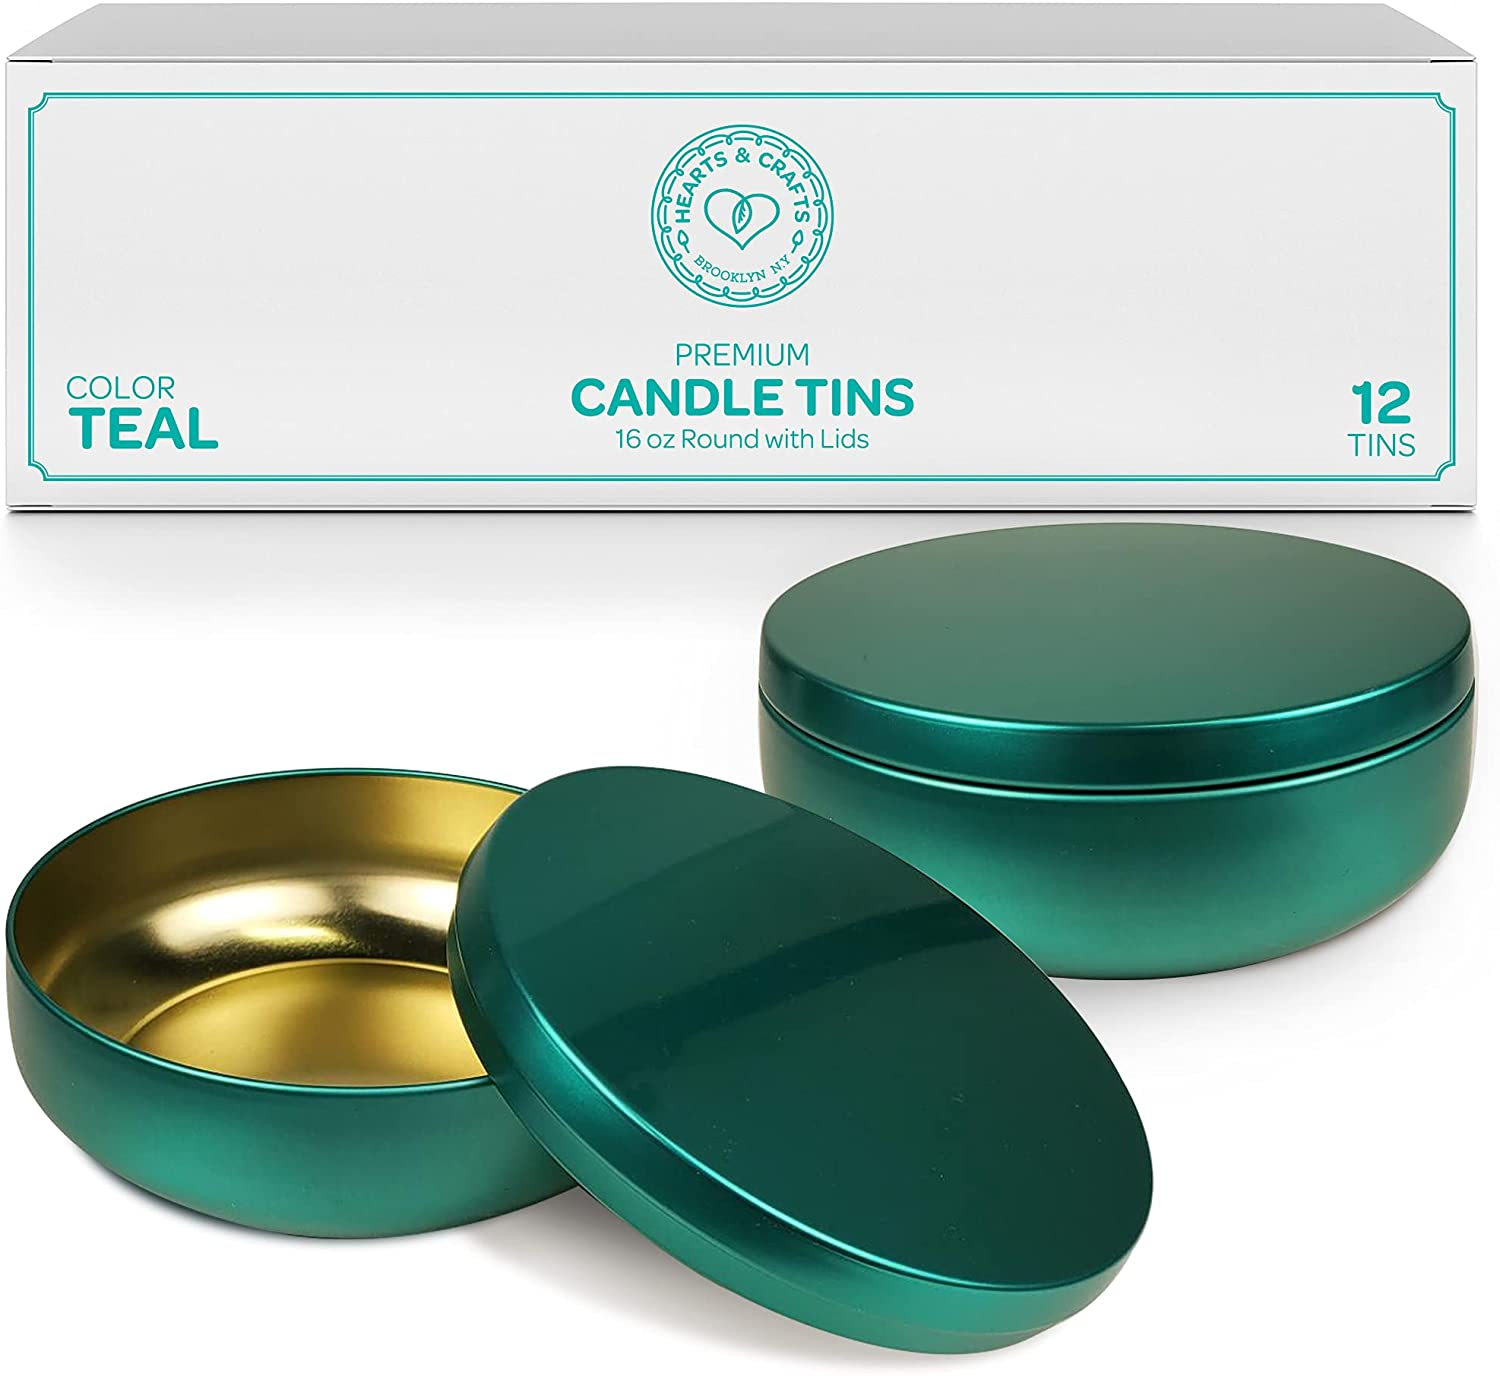 16oz Teal Candle Tins – 12 Count